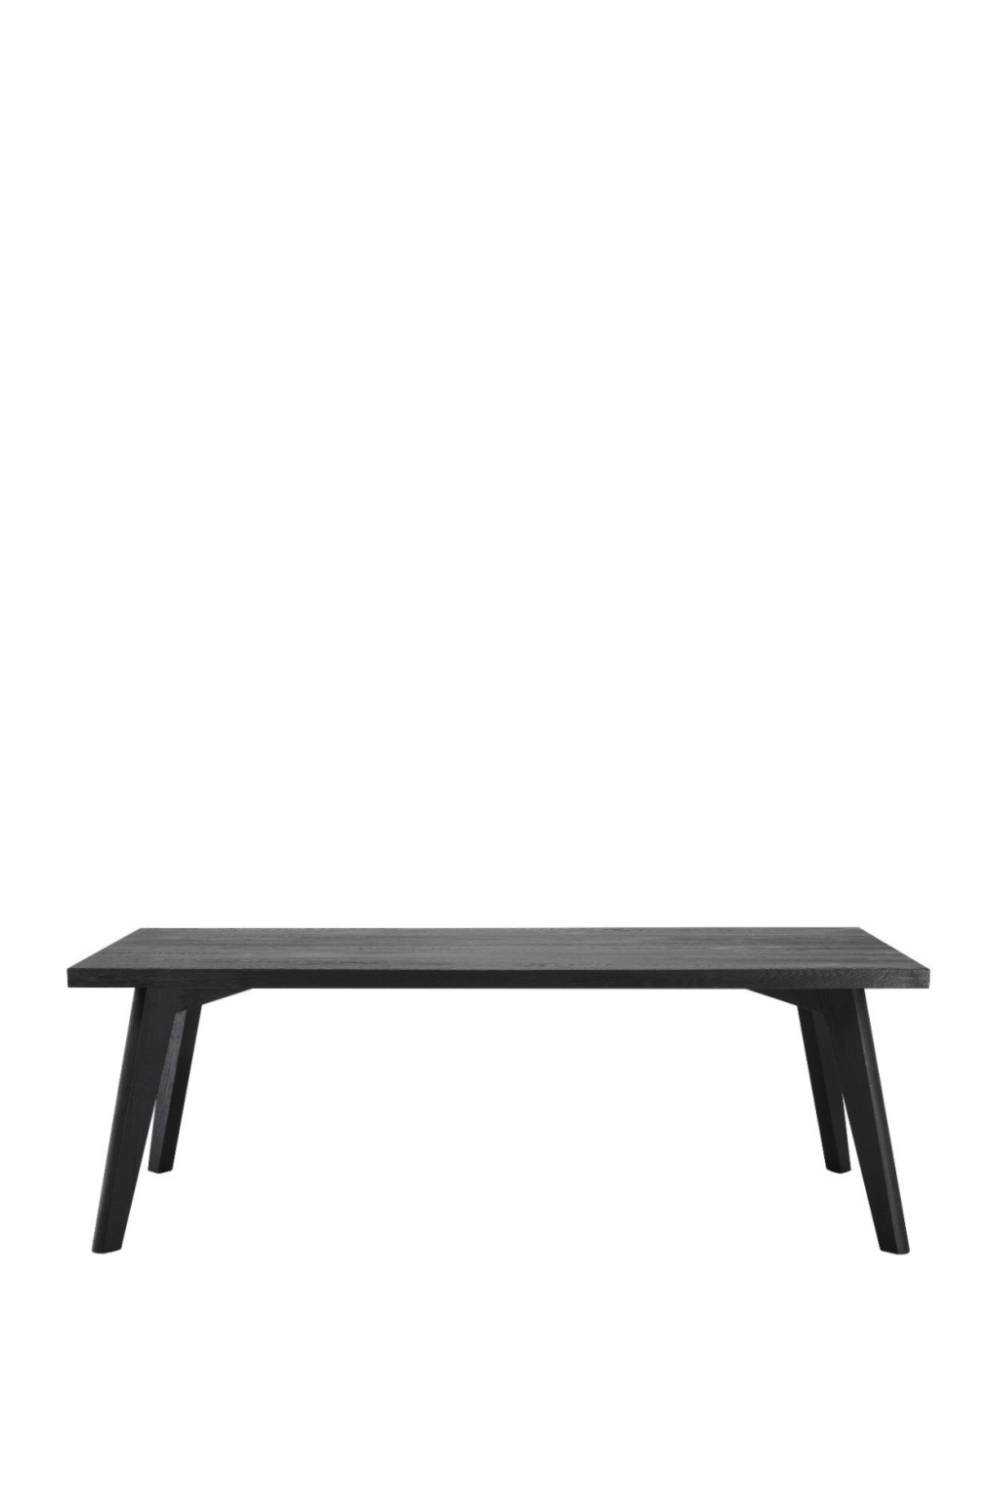 Rectangular Black Oak Dining Table | Eichholtz | #1 Eichholtz Retailer